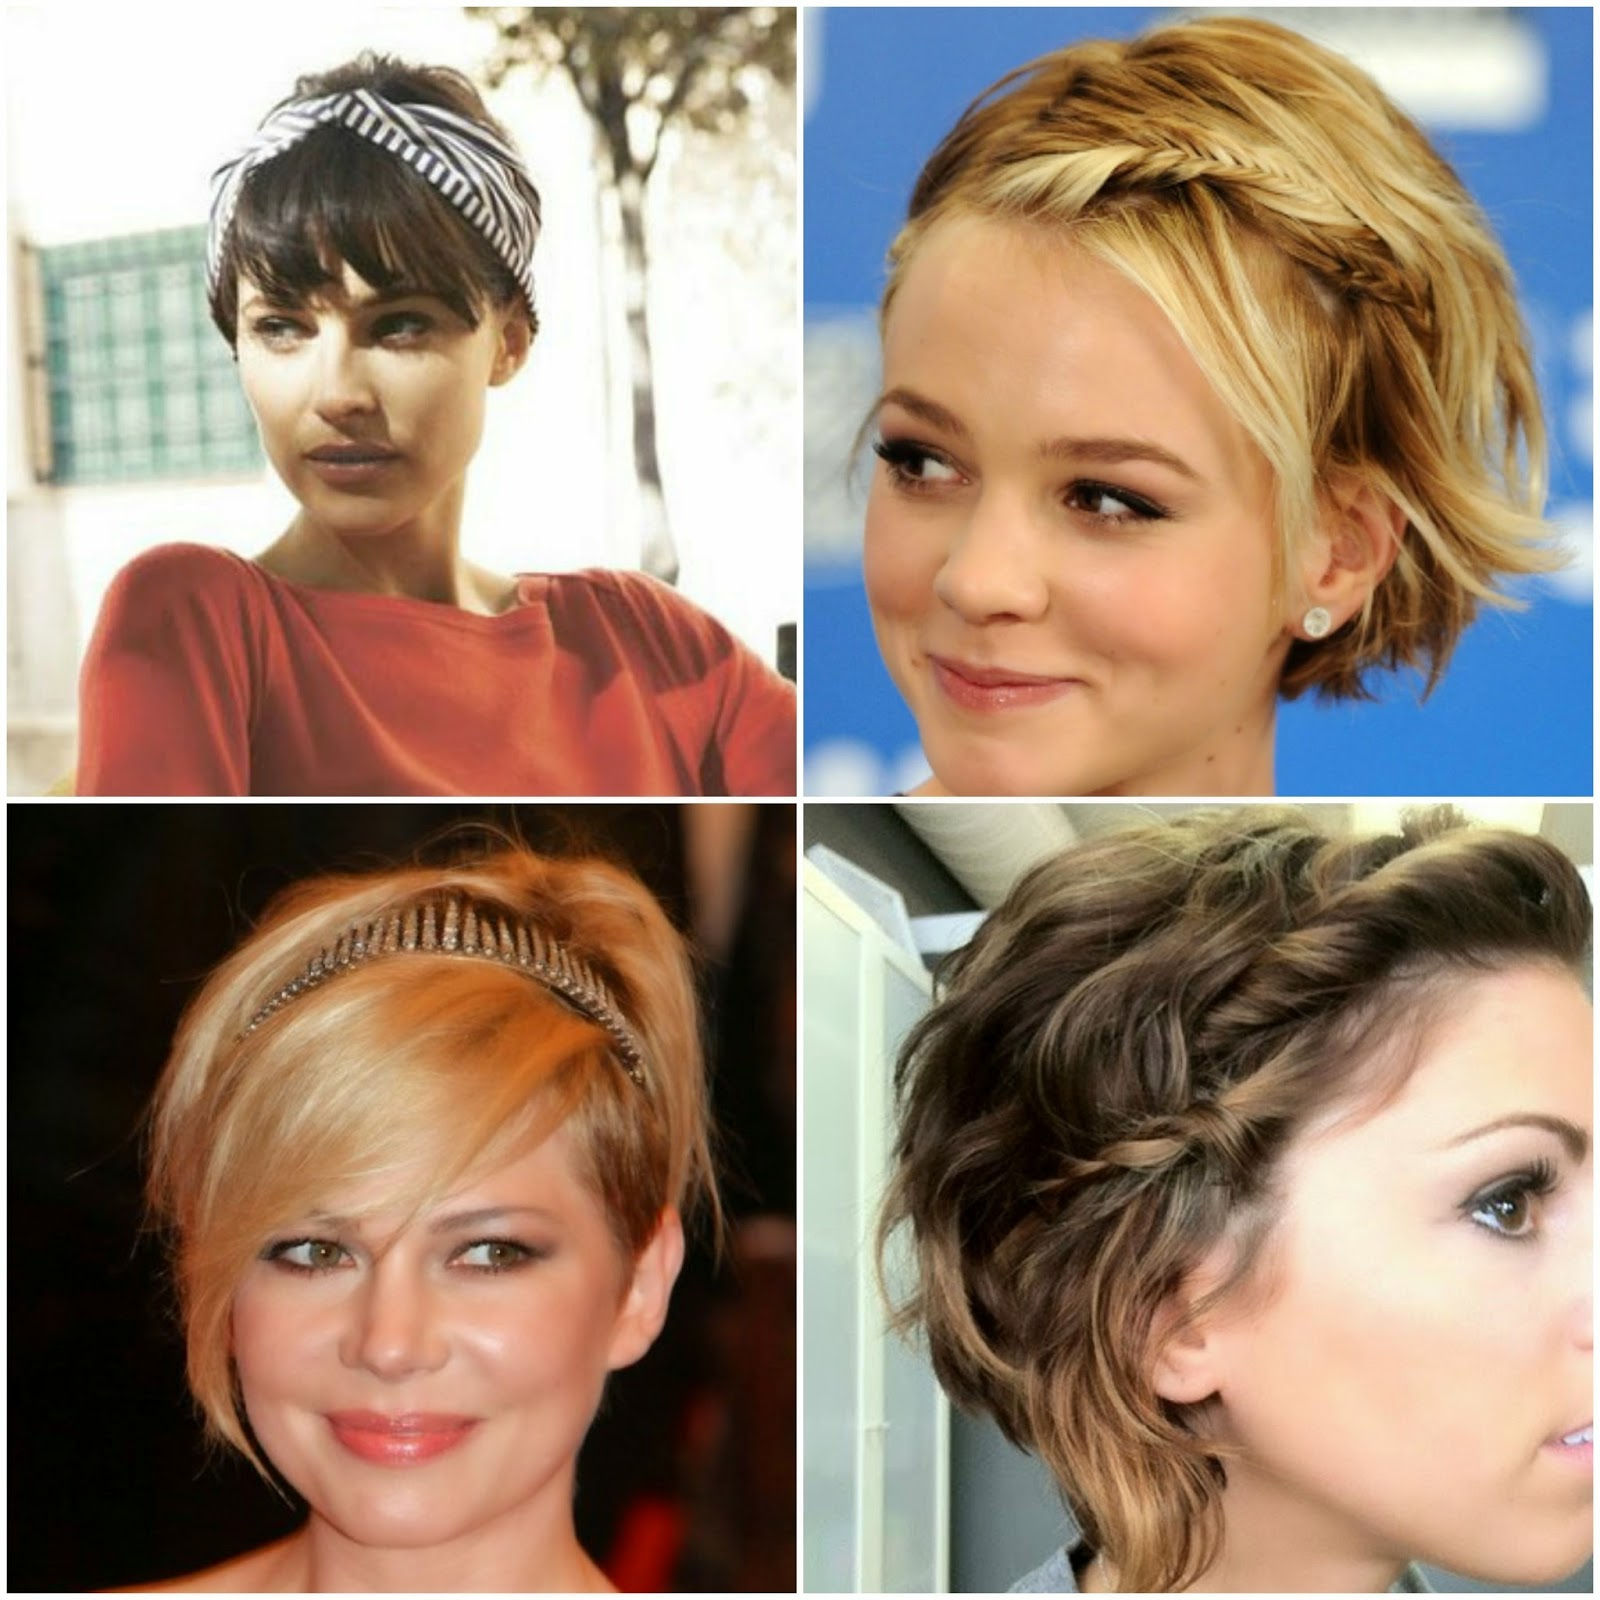 Growing Out My Pixie Cut Like : Trollxchromosomes For Short Hairstyles For Growing Out A Pixie Cut (Gallery 2 of 25)